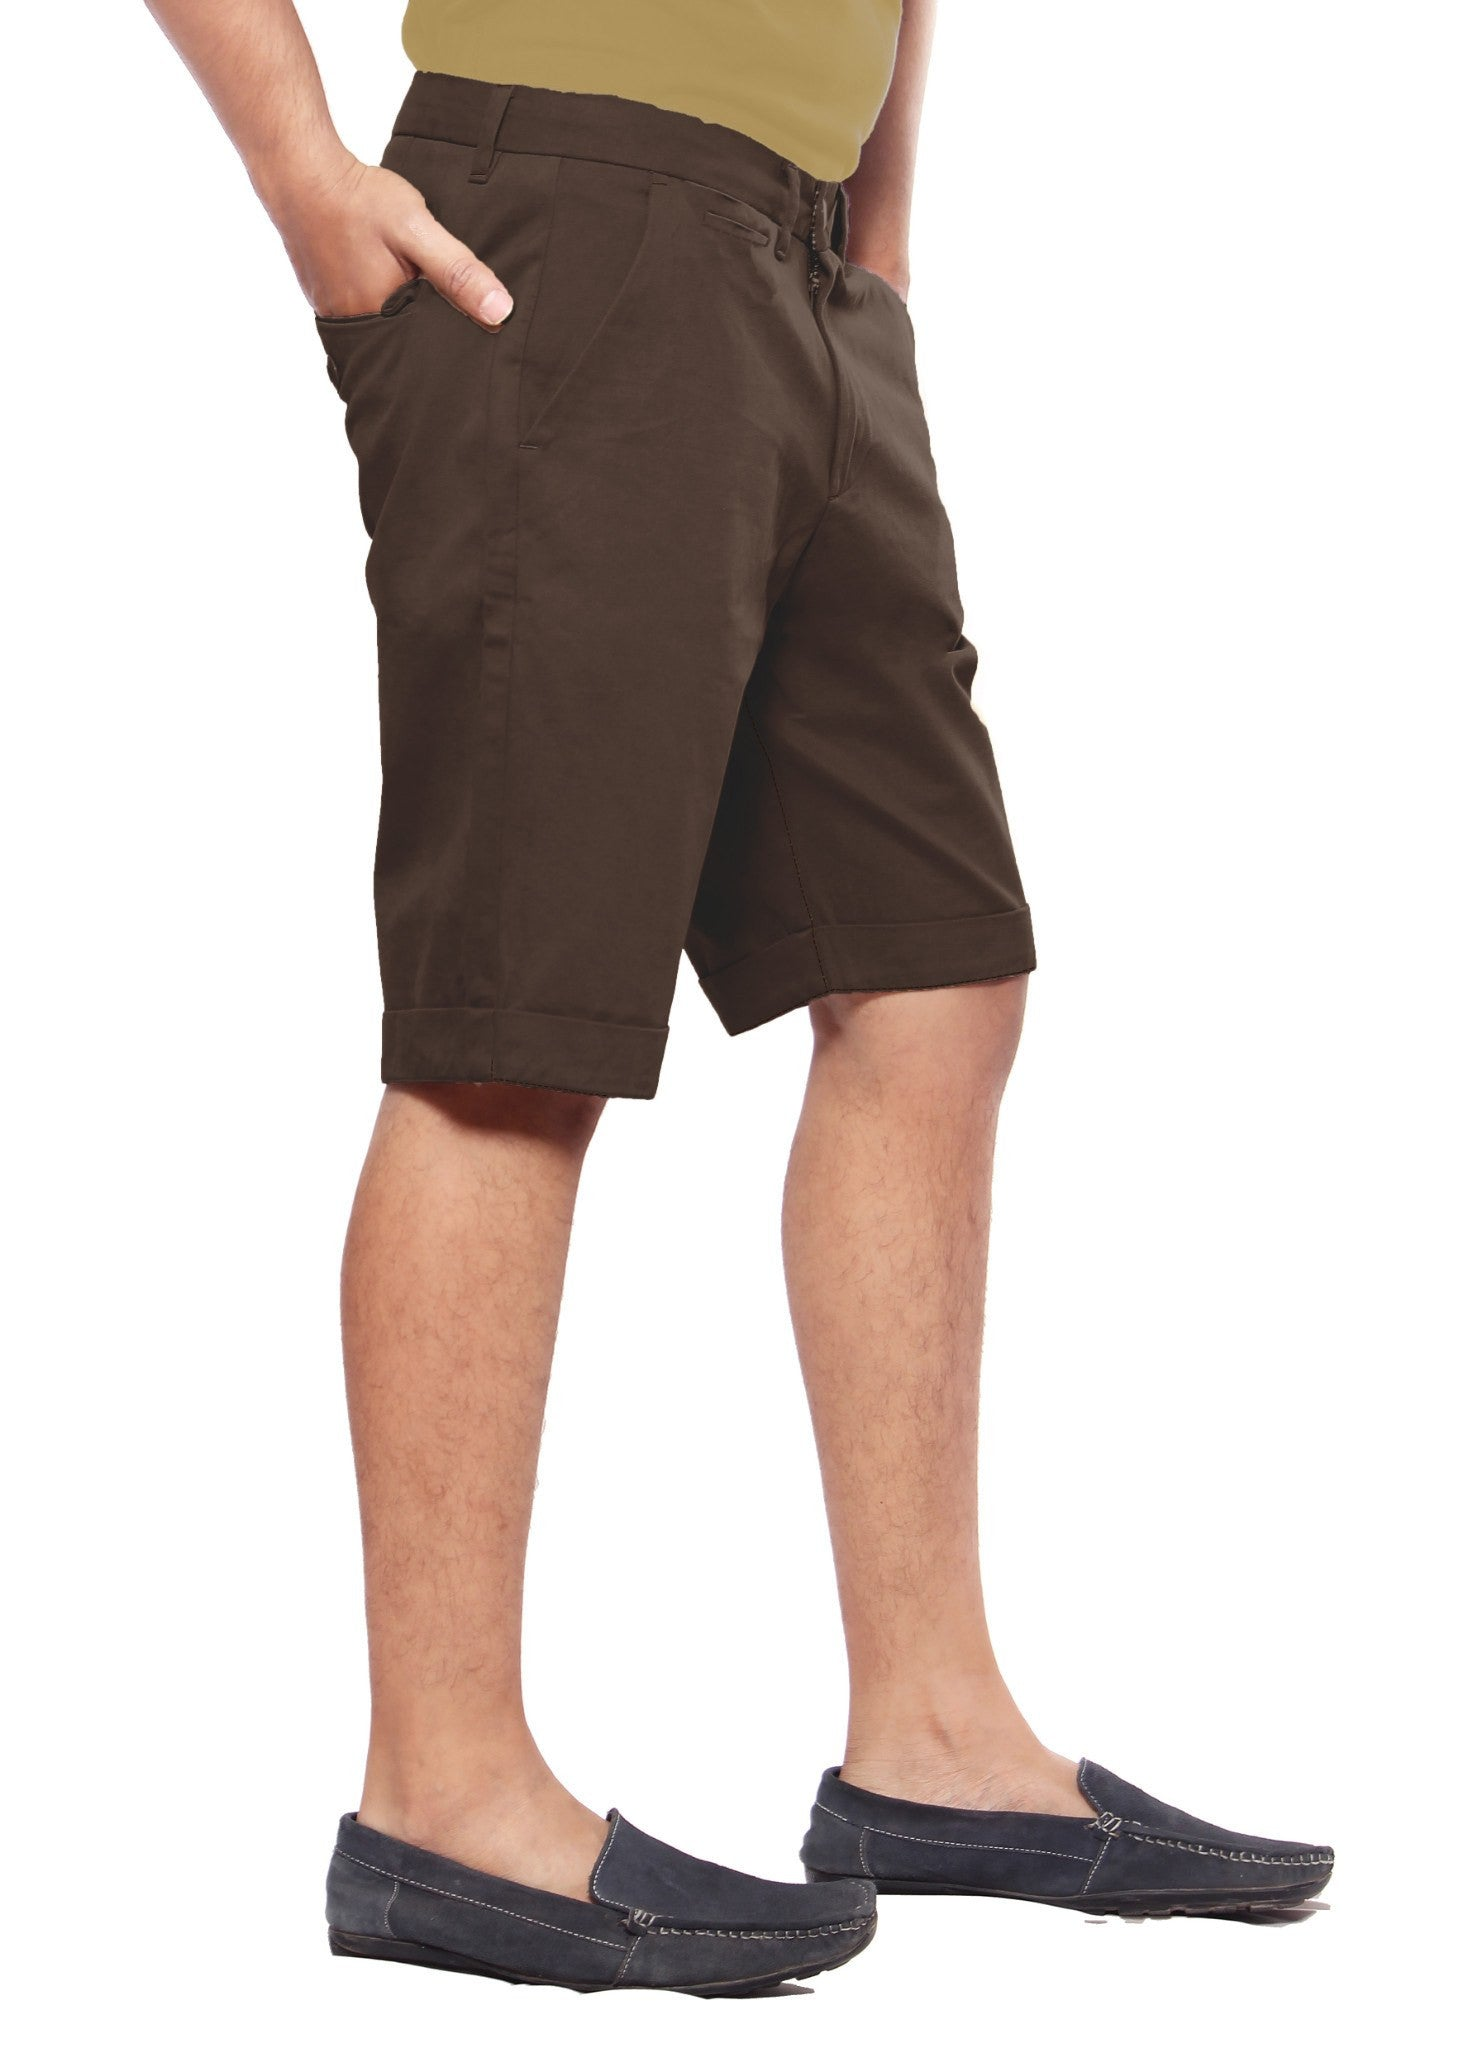 Uber Coffee Brown Meerut Shorts right side view